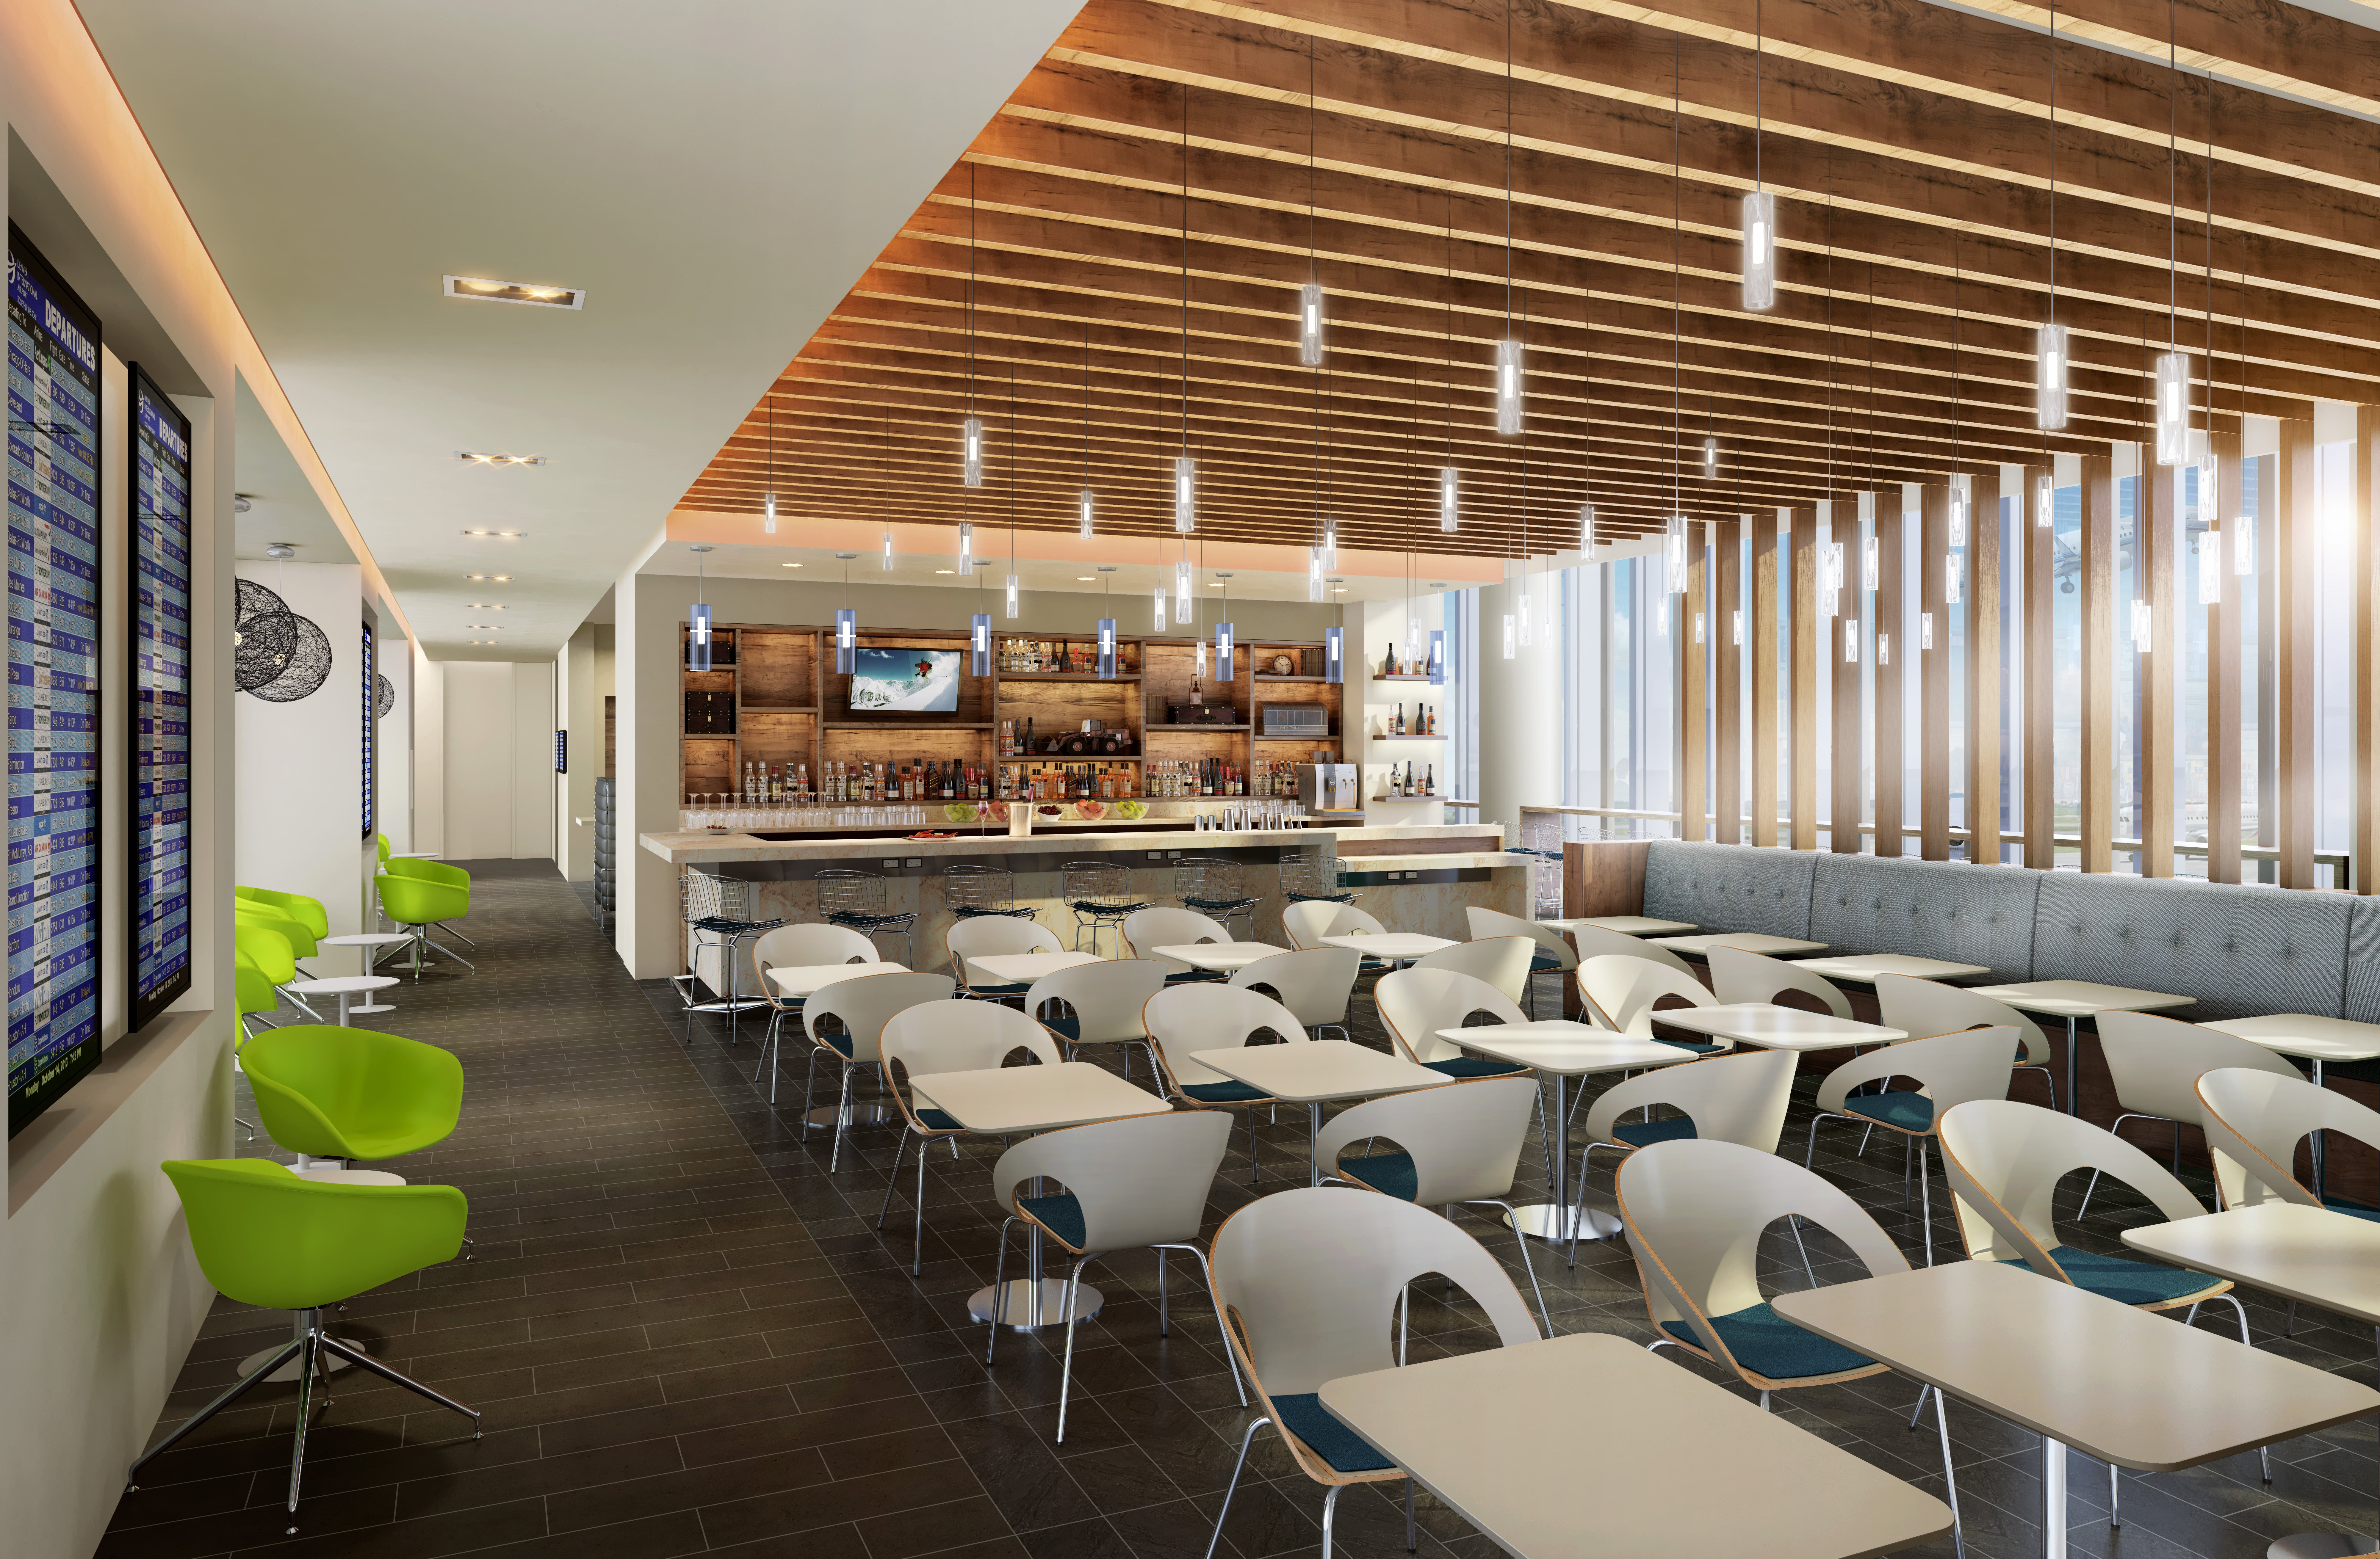 amex limits centurion lounge access to certain cardmembers